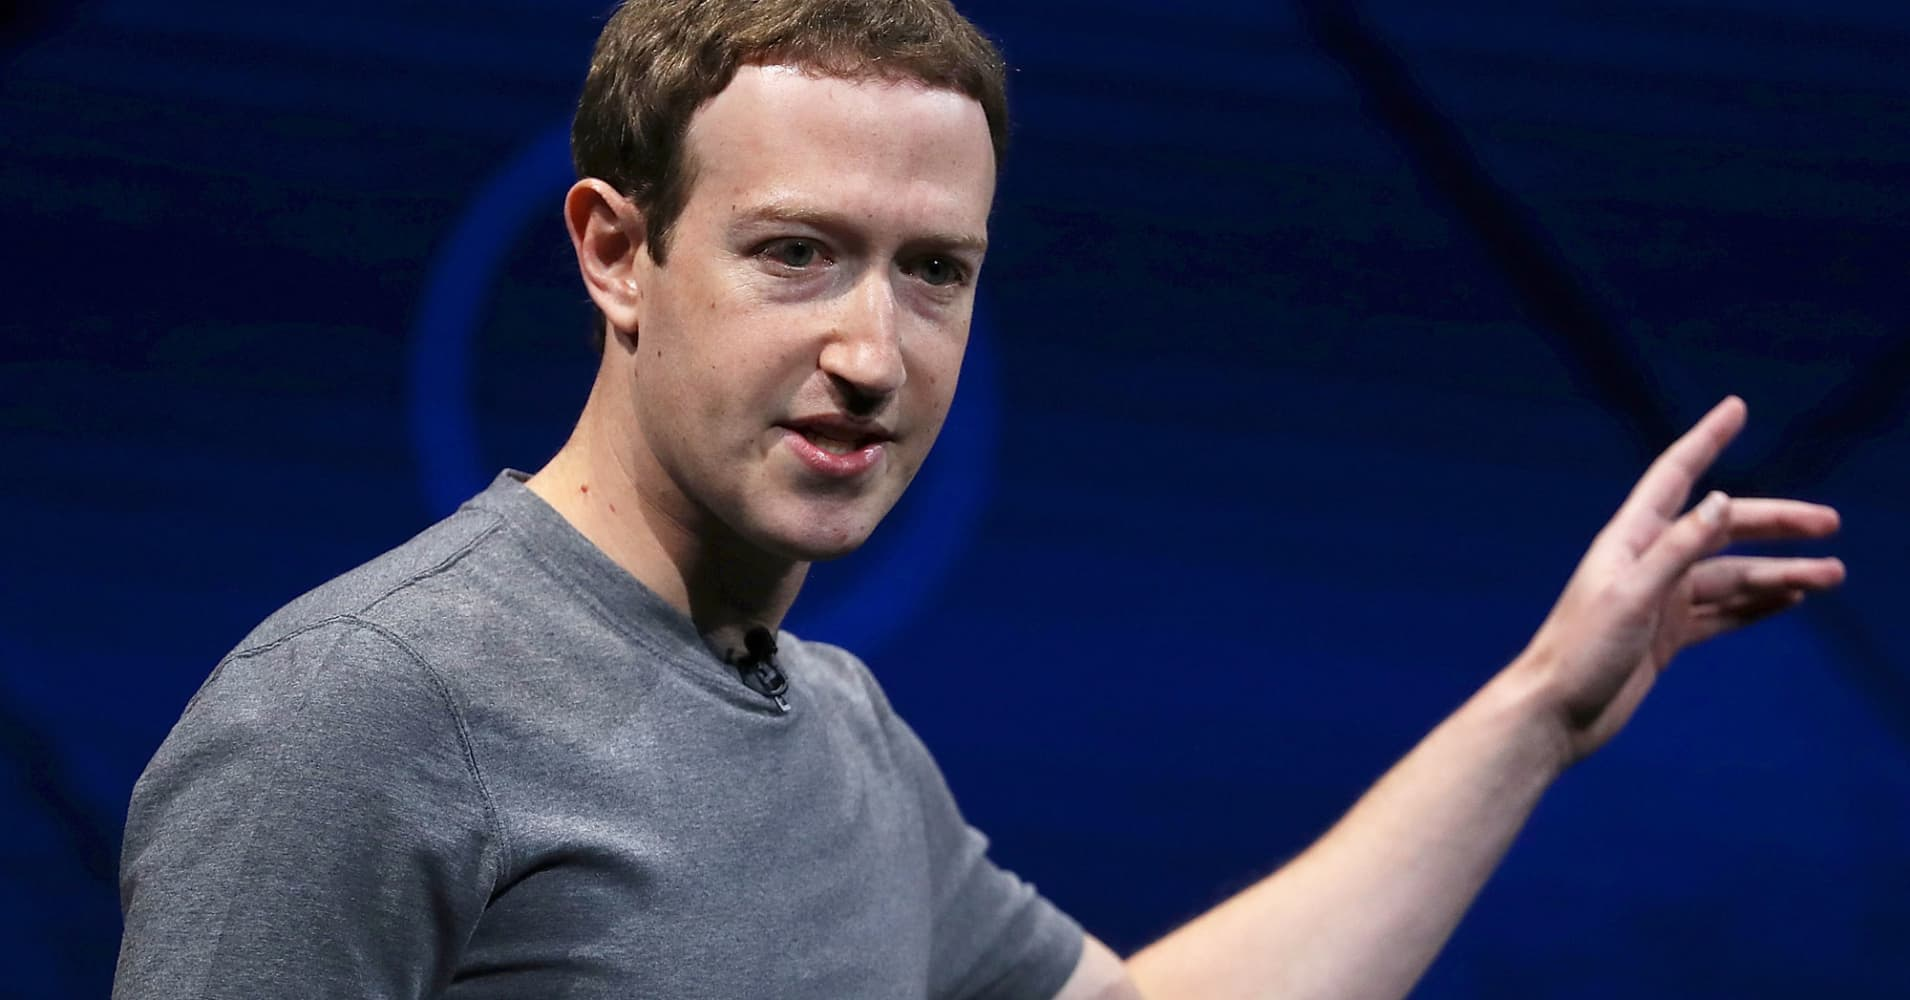 Facebook is reportedly in talks to produce original TV-quality shows